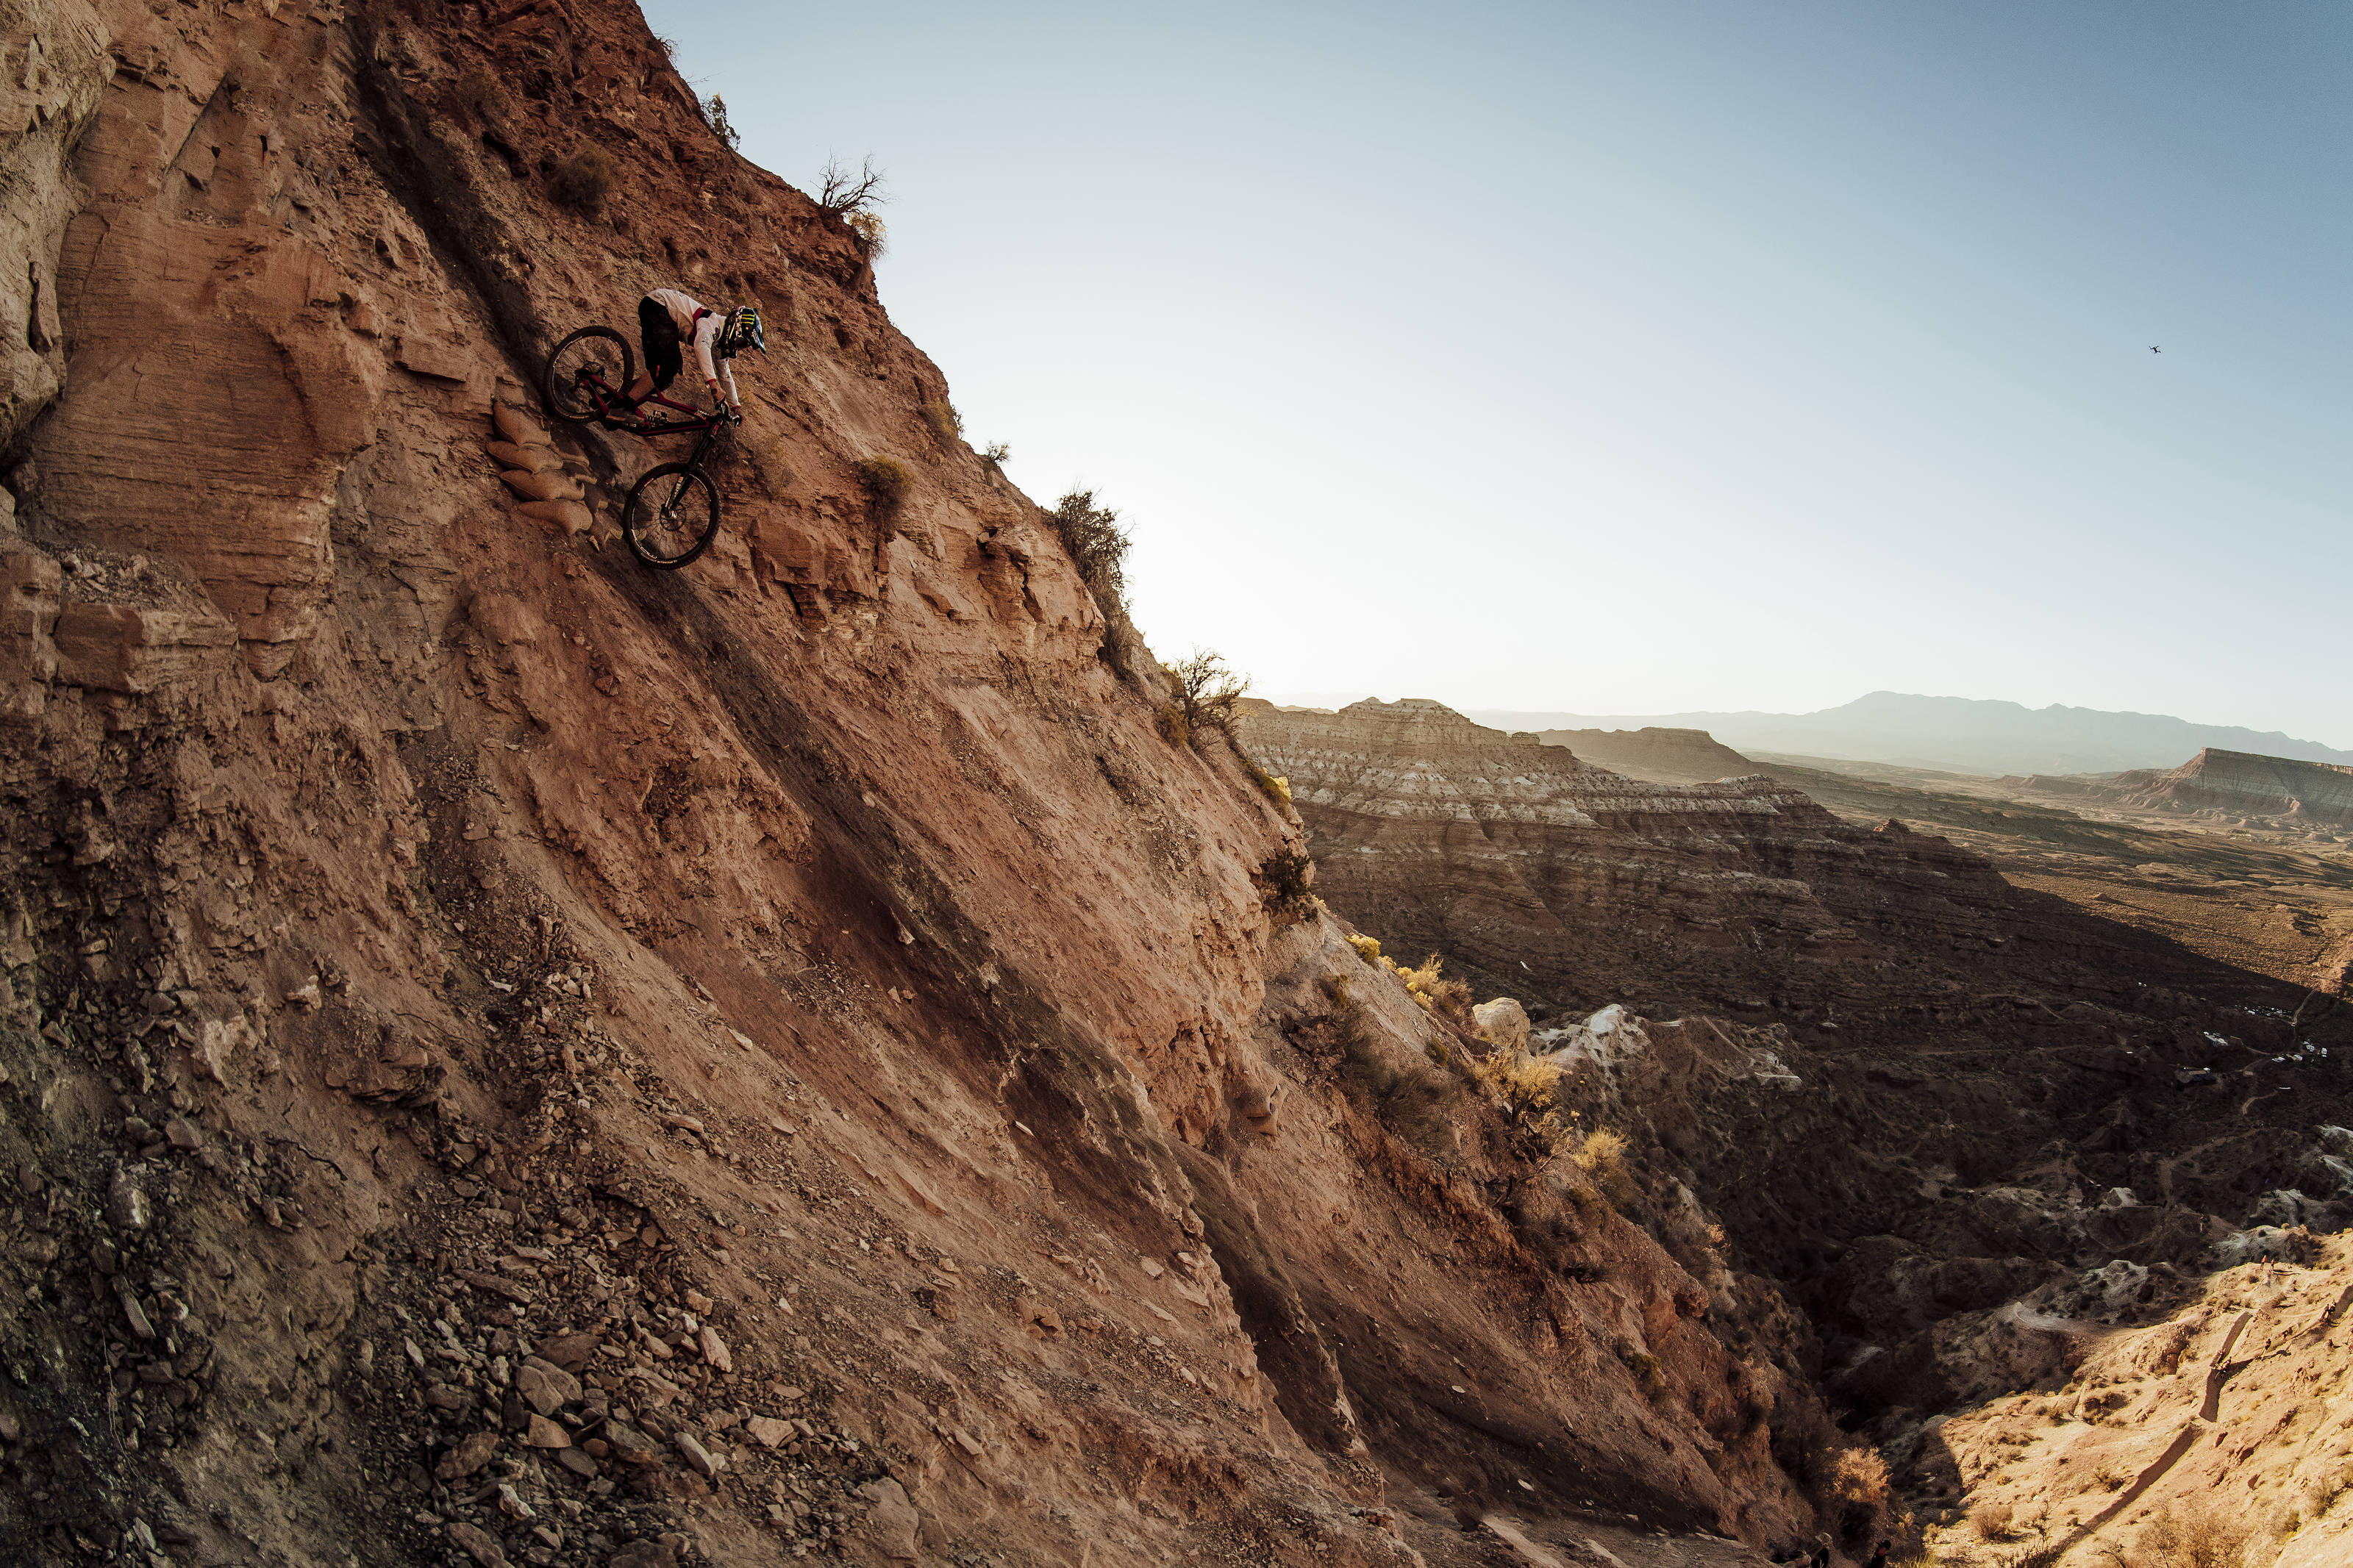 What's it really like to ride Red Bull Rampage